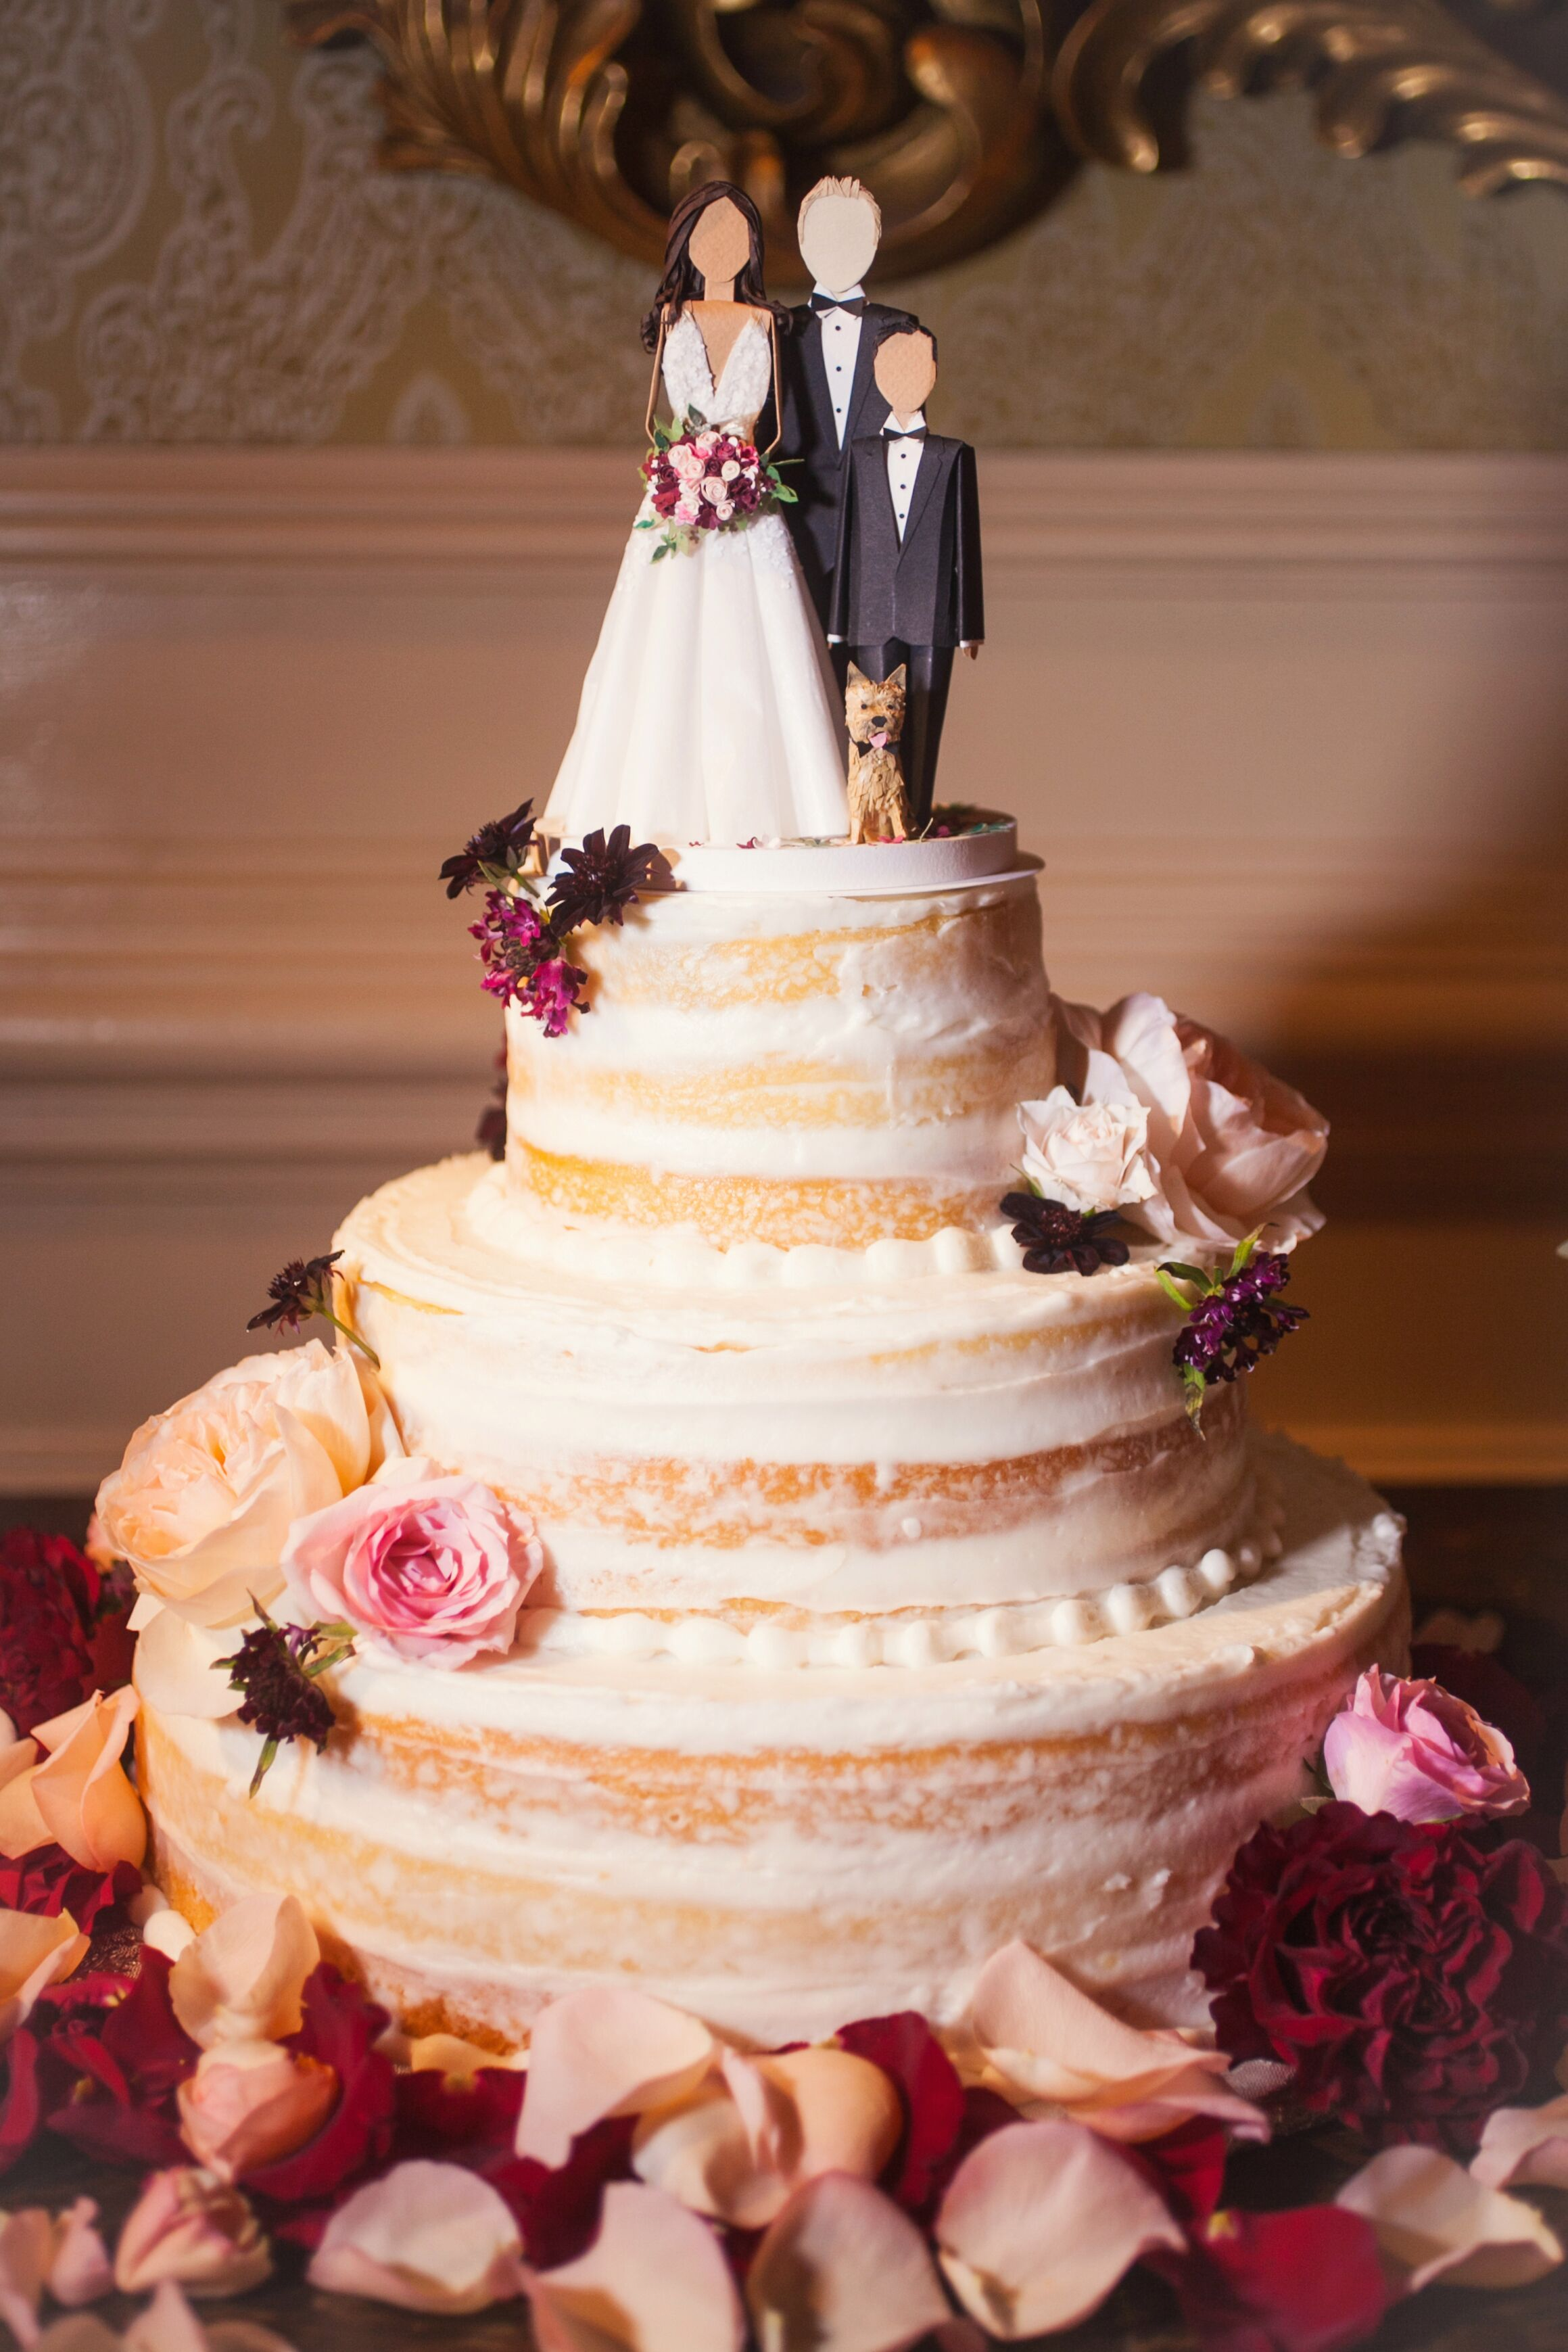 Naked Wedding Butter Cake With Buttercream Frosting-4646